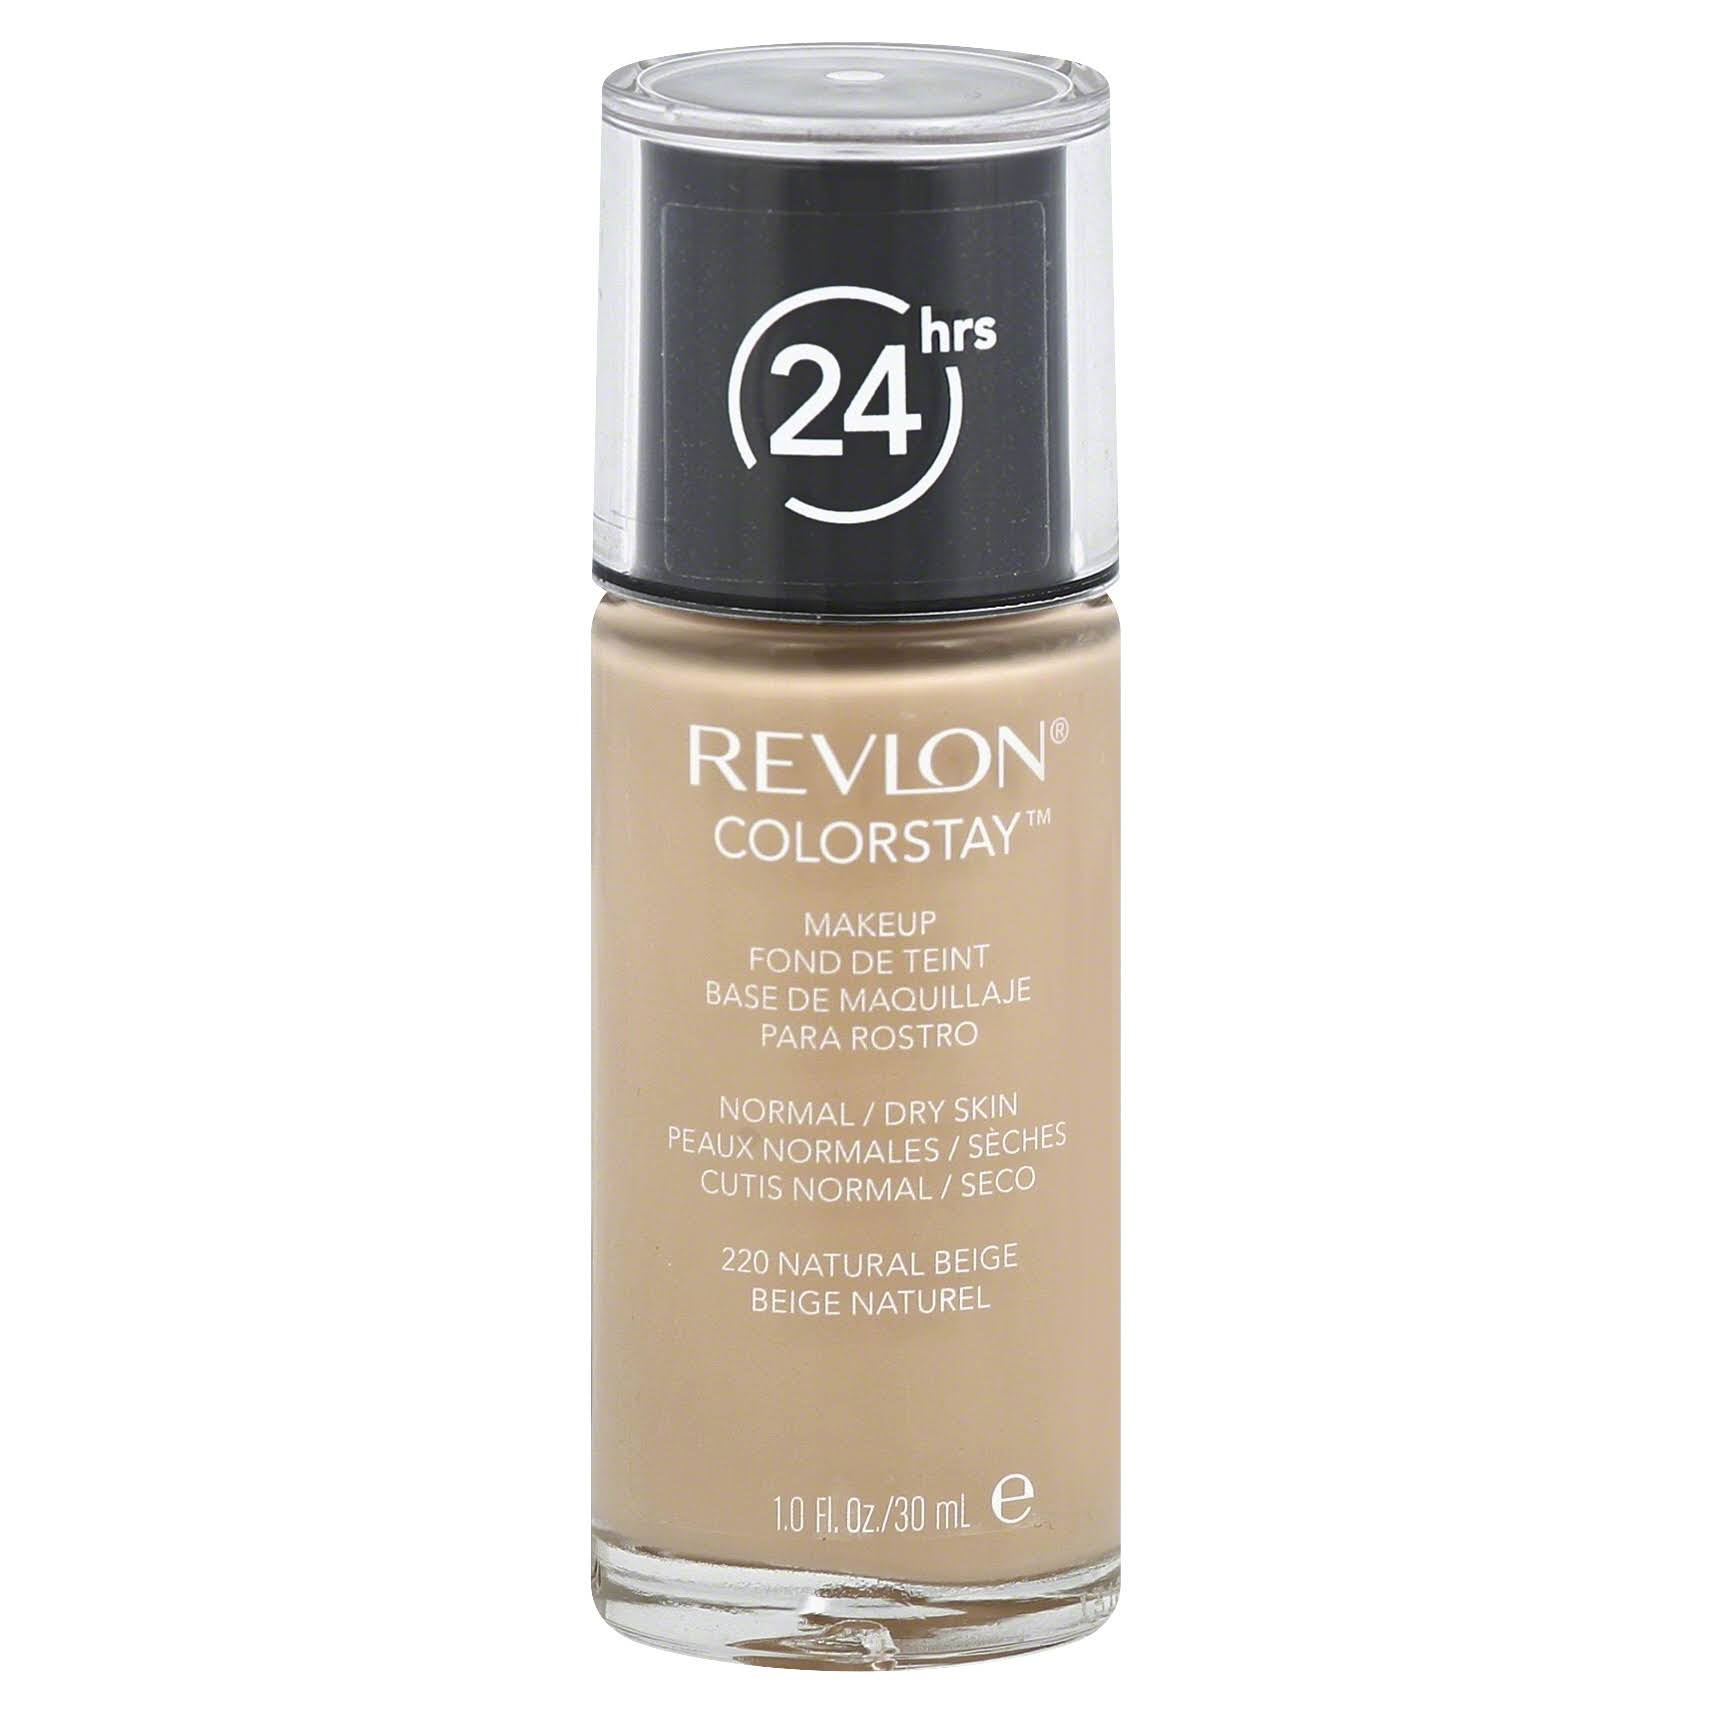 Revlon Colorstay Makeup - 220 Natural Beige, 30ml